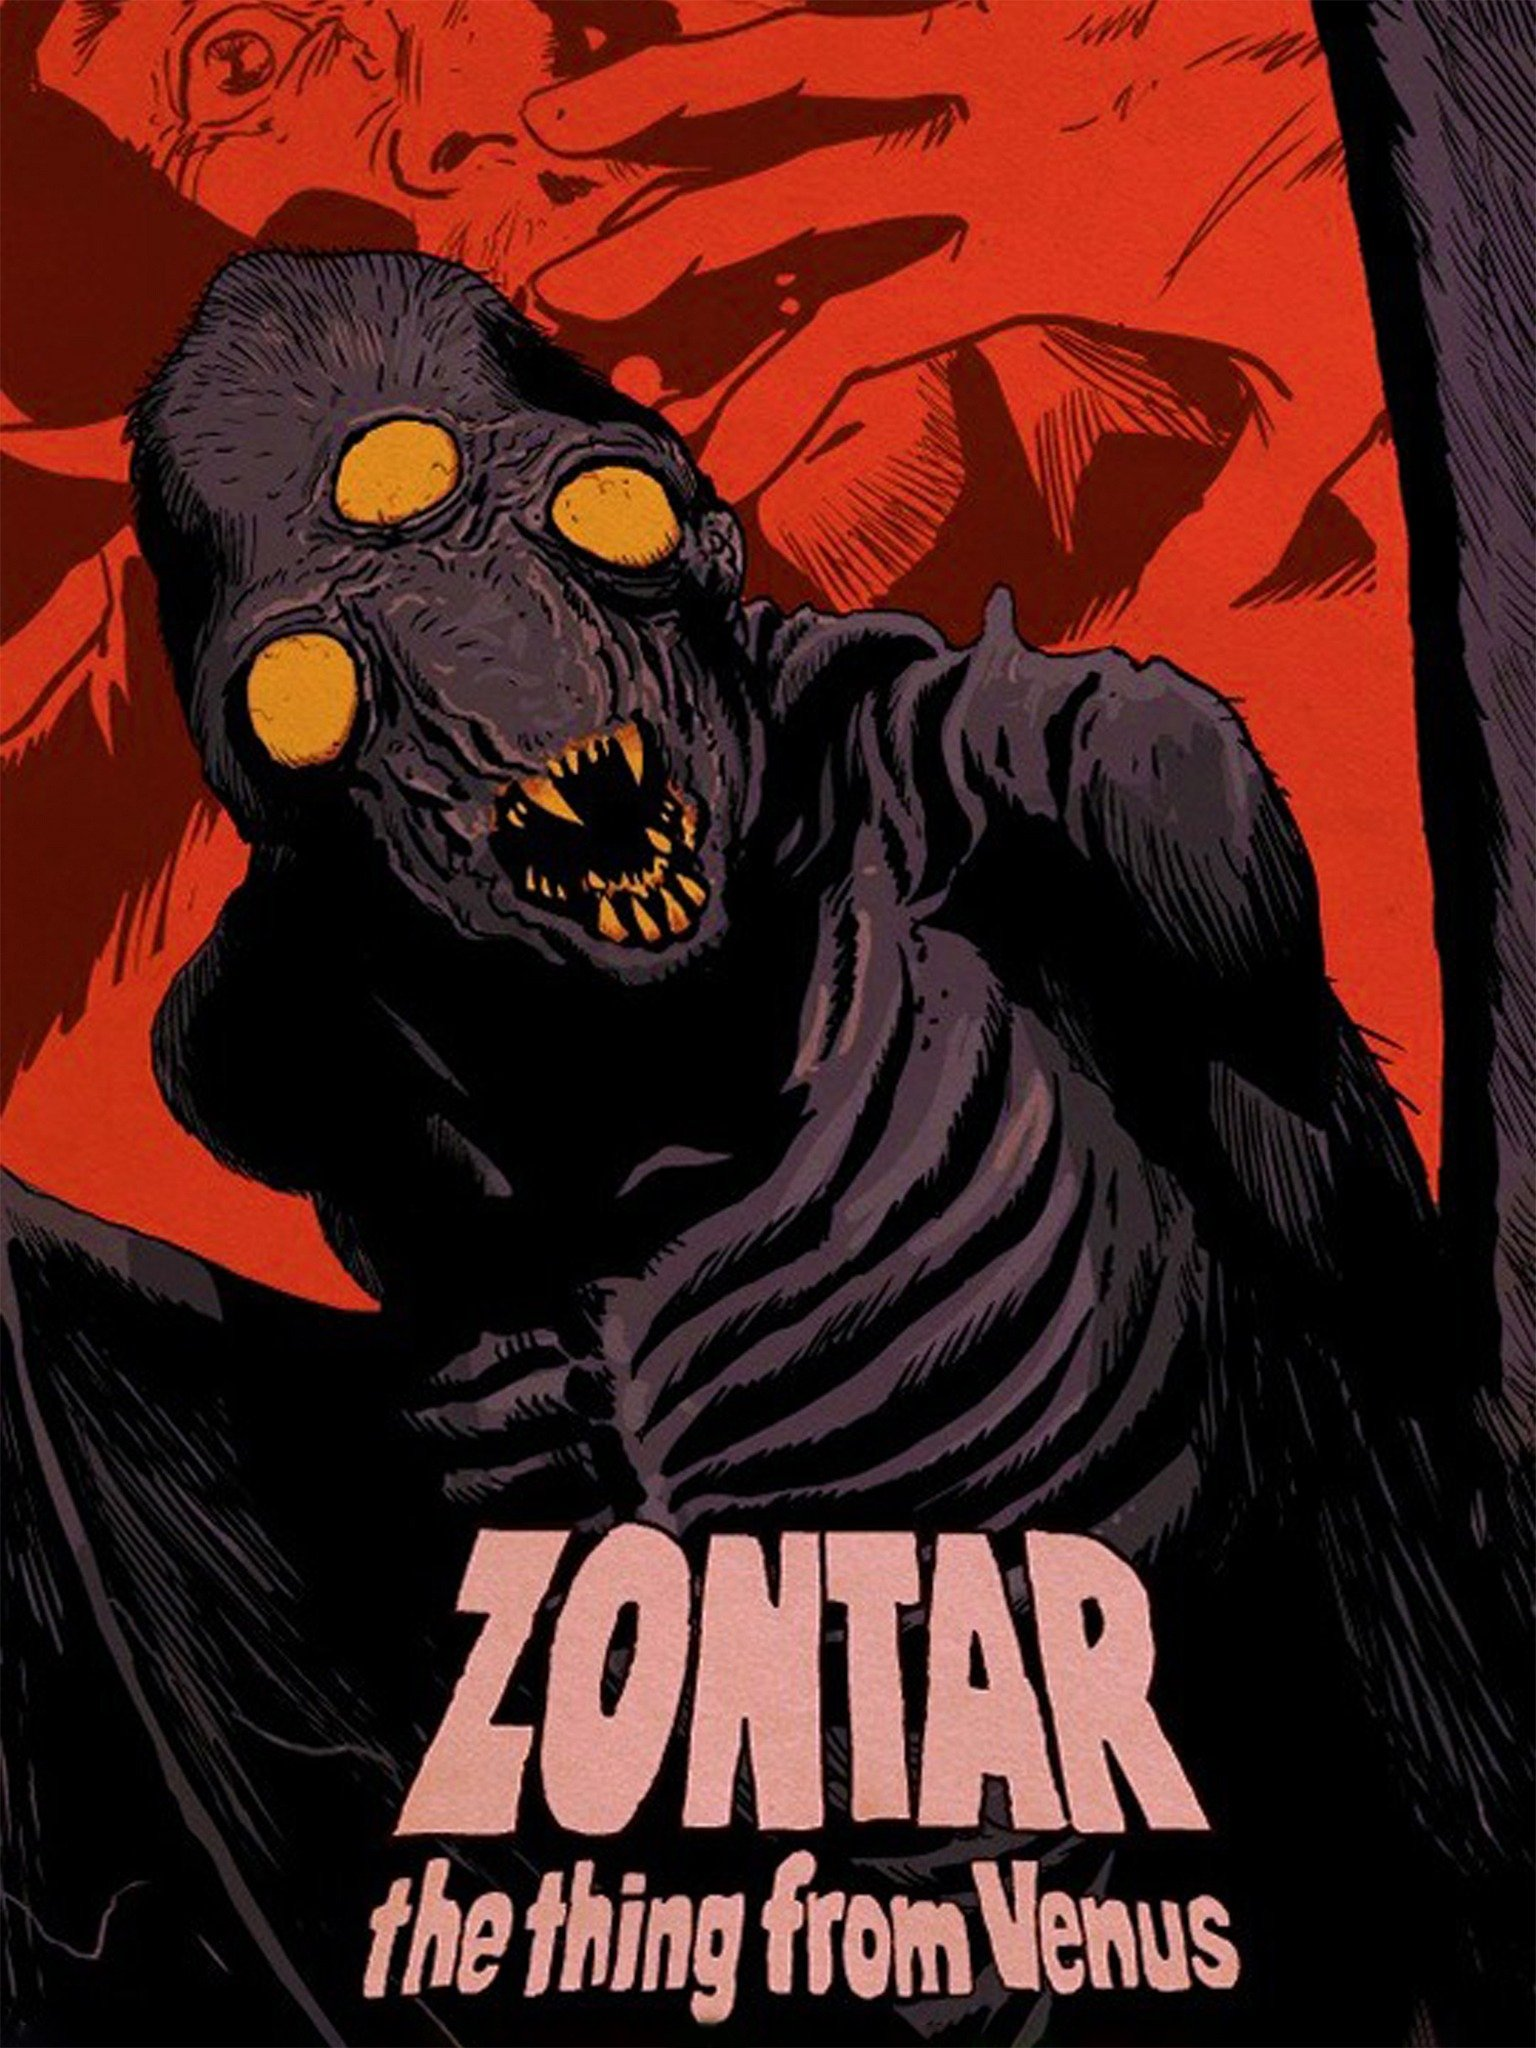 ZONTAR: THE THING FROM VENUS (1966) Reviews and free to